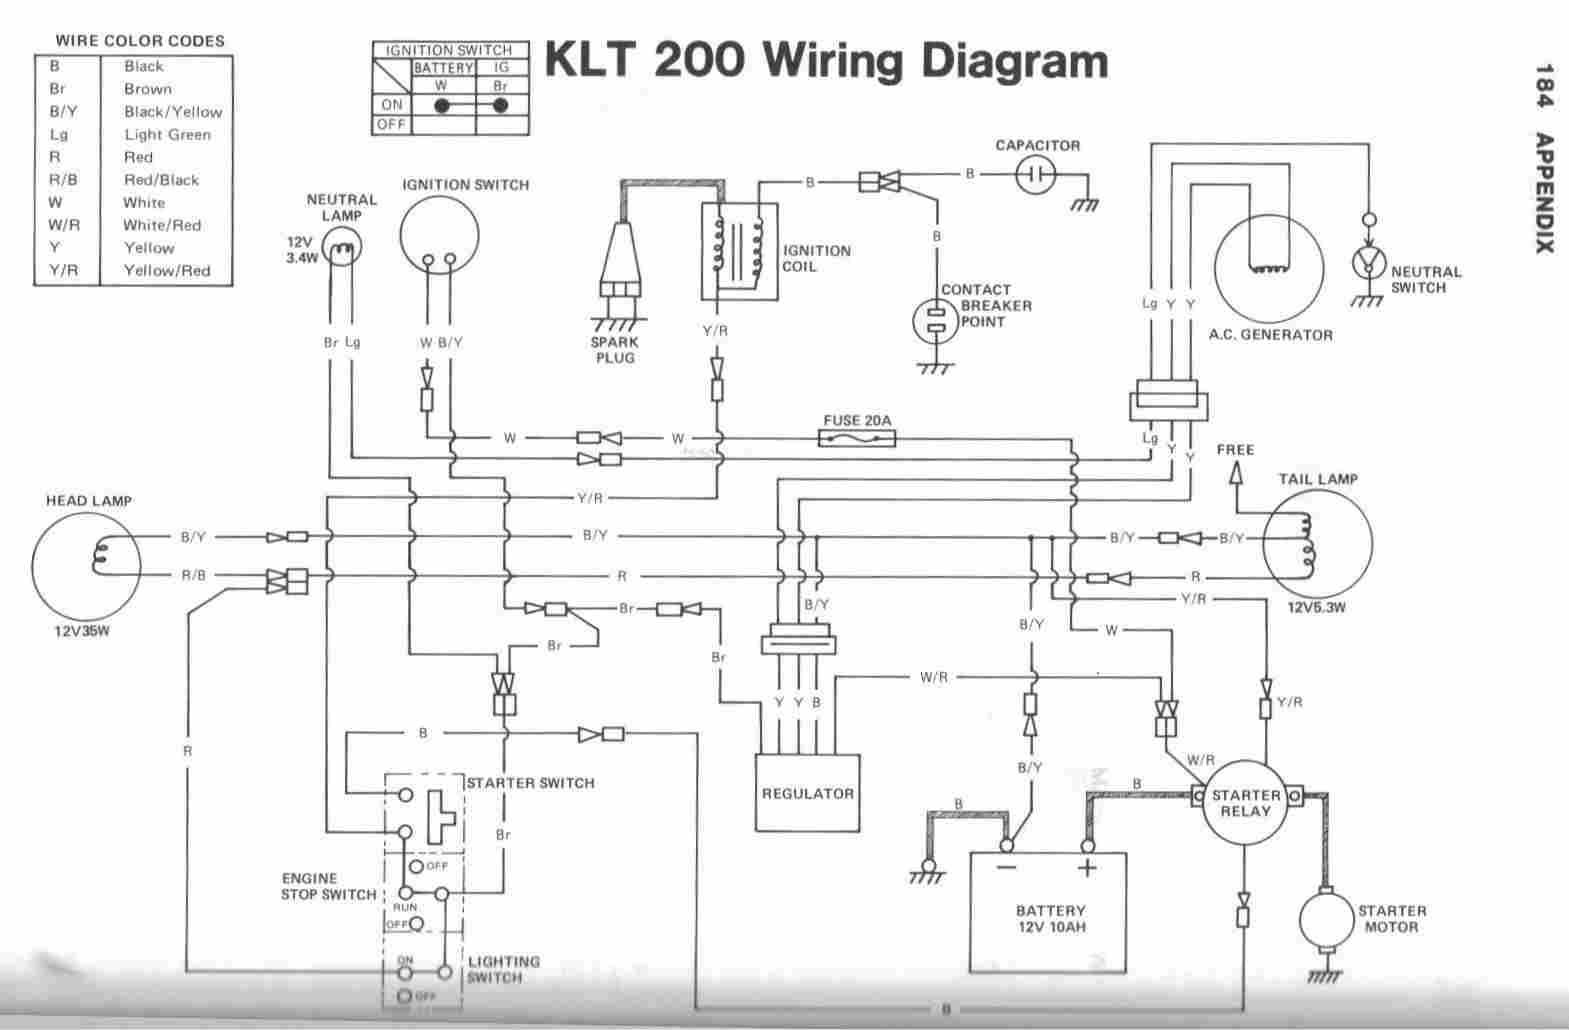 2869034594ce054a636782e5c44b61b4 residential electrical wiring diagrams pdf easy routing cool circuit wiring diagram at gsmportal.co